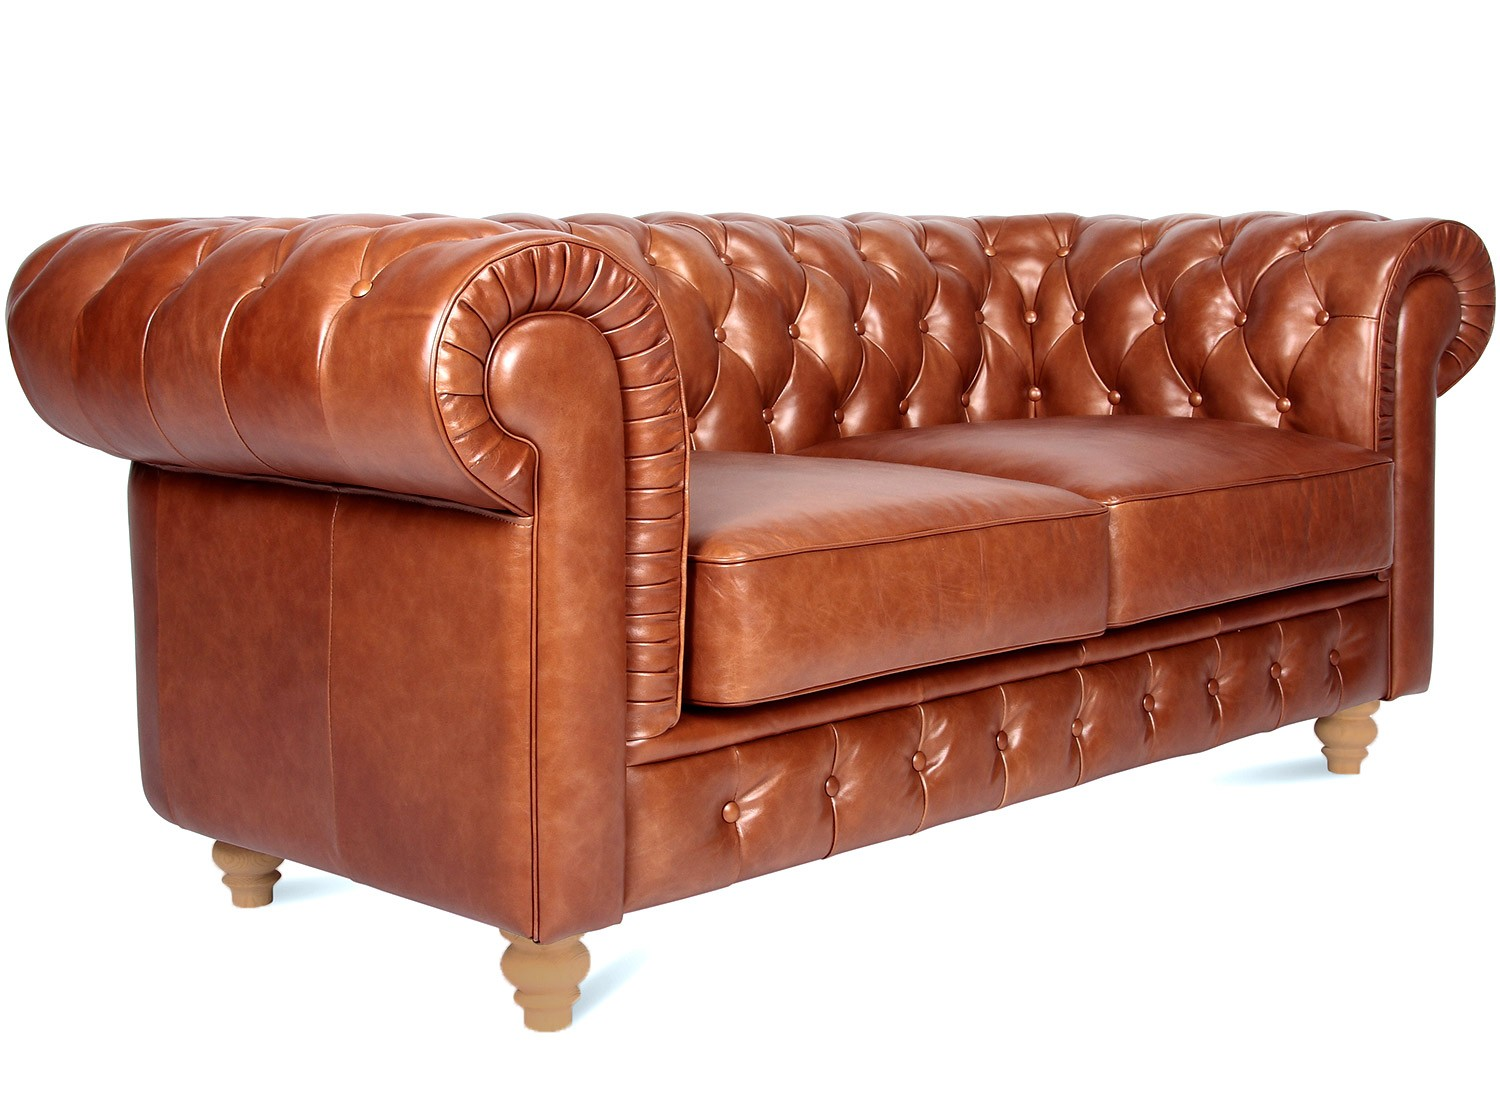 tan leather sofa bed australia beds world twickenham chesterfield 2 seater